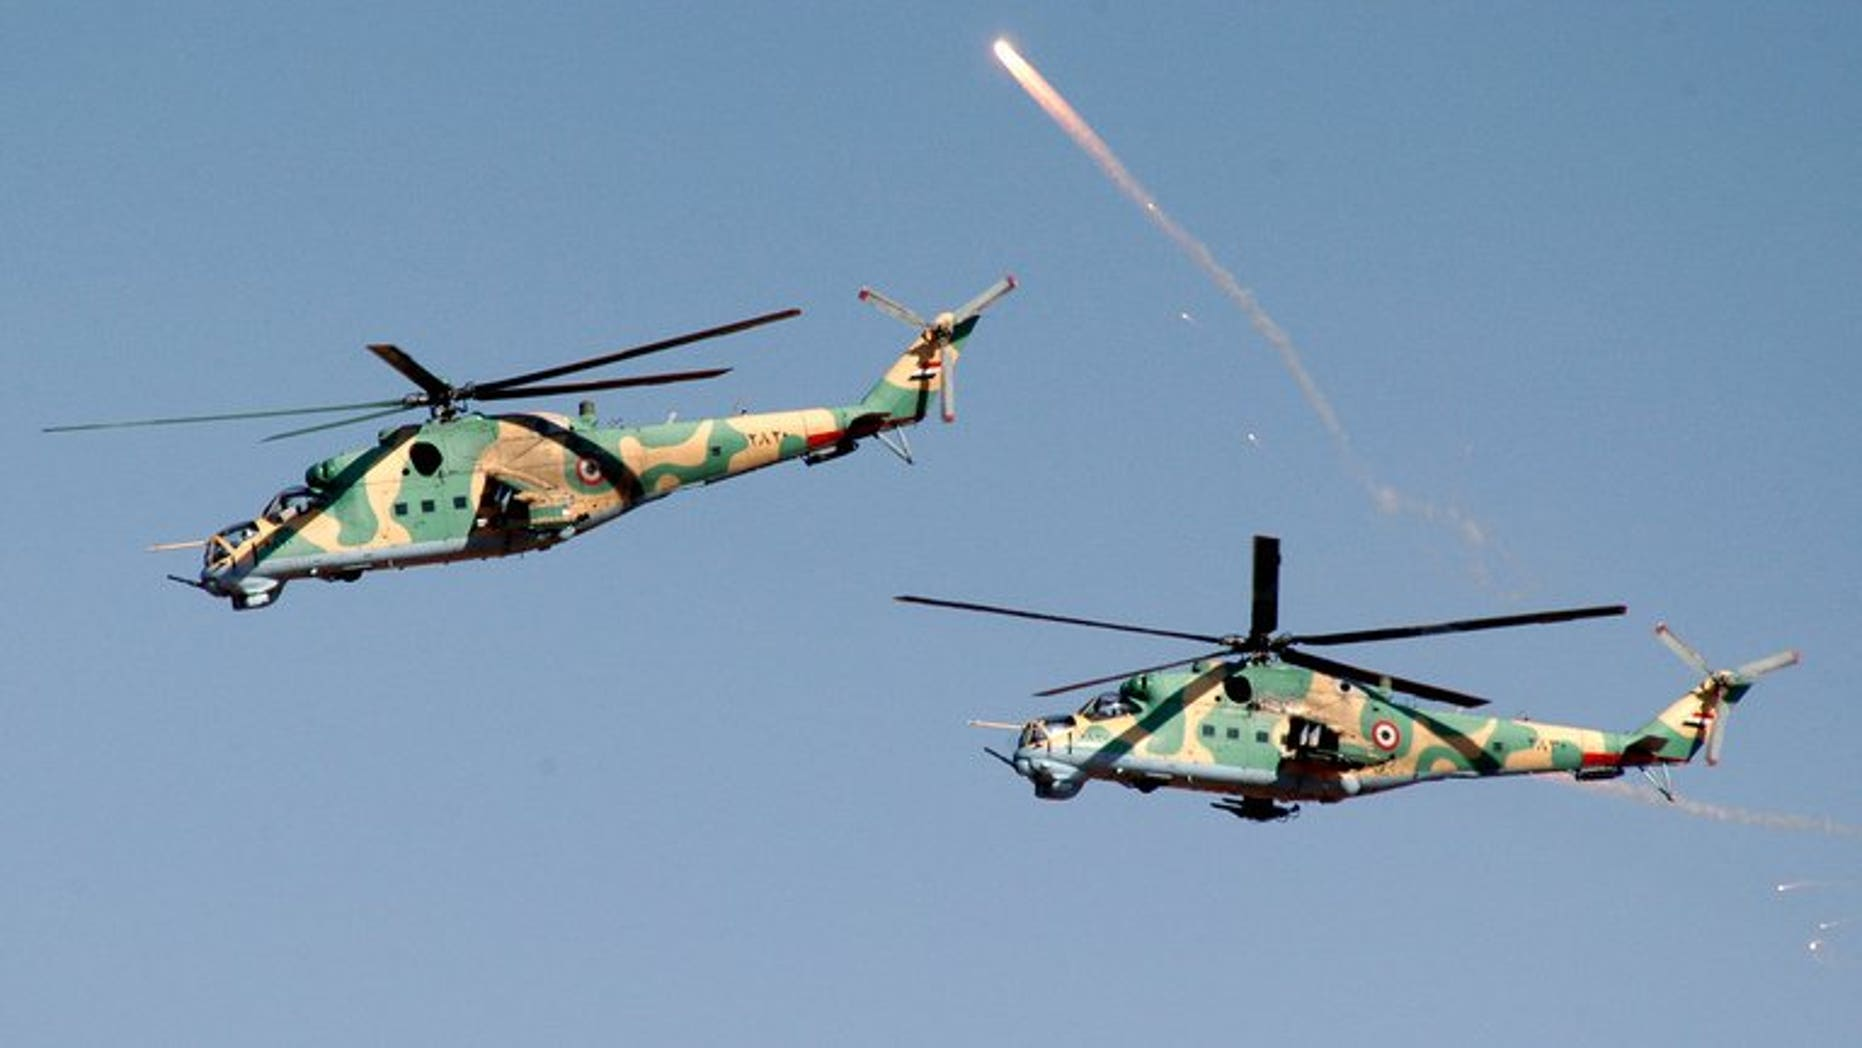 SYrian helicopters take part in military manoeuvres at an undisclosed location on December 20, 2011. A Syrian military helicopter fired rockets at a pro-rebel region of eastern Lebanon in the early hours of Thursday, a security source told AFP.